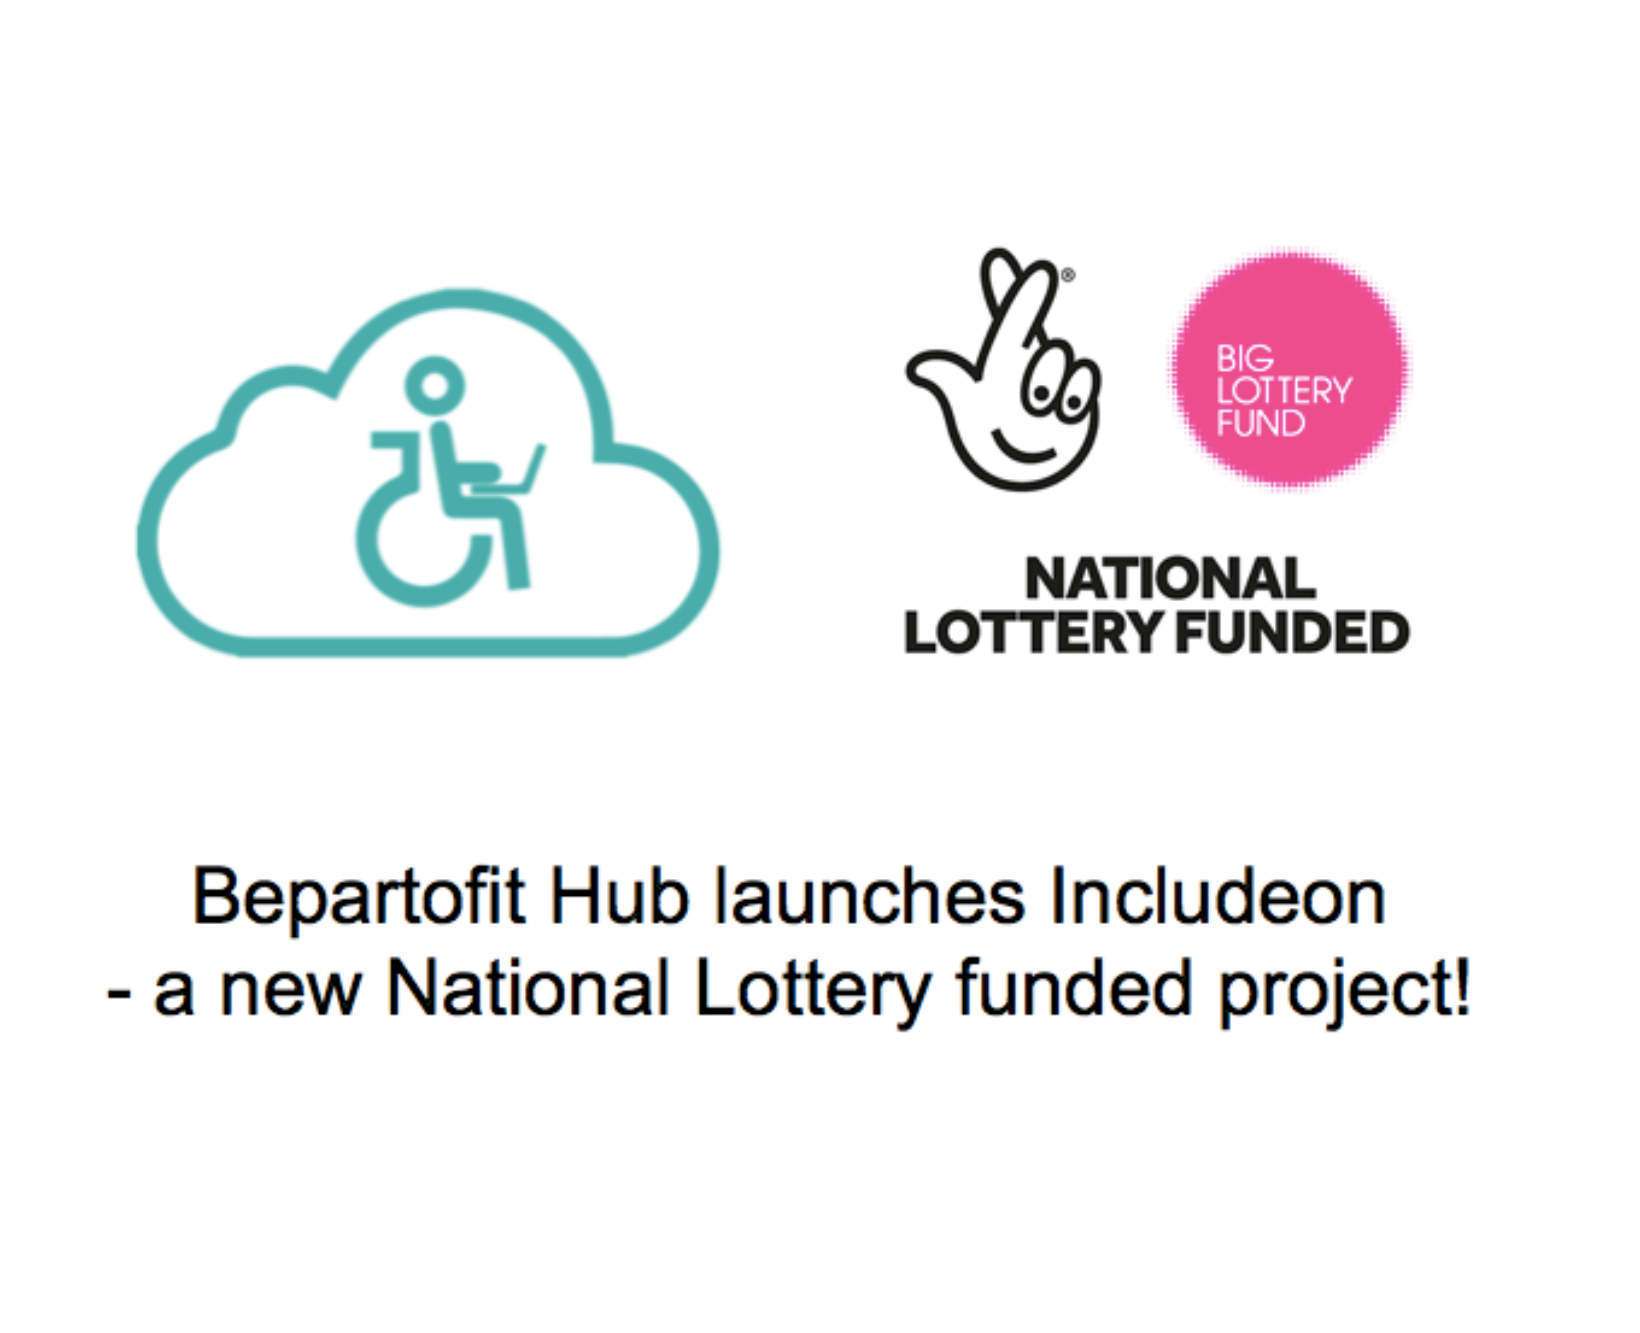 Includeon_NationalLottery